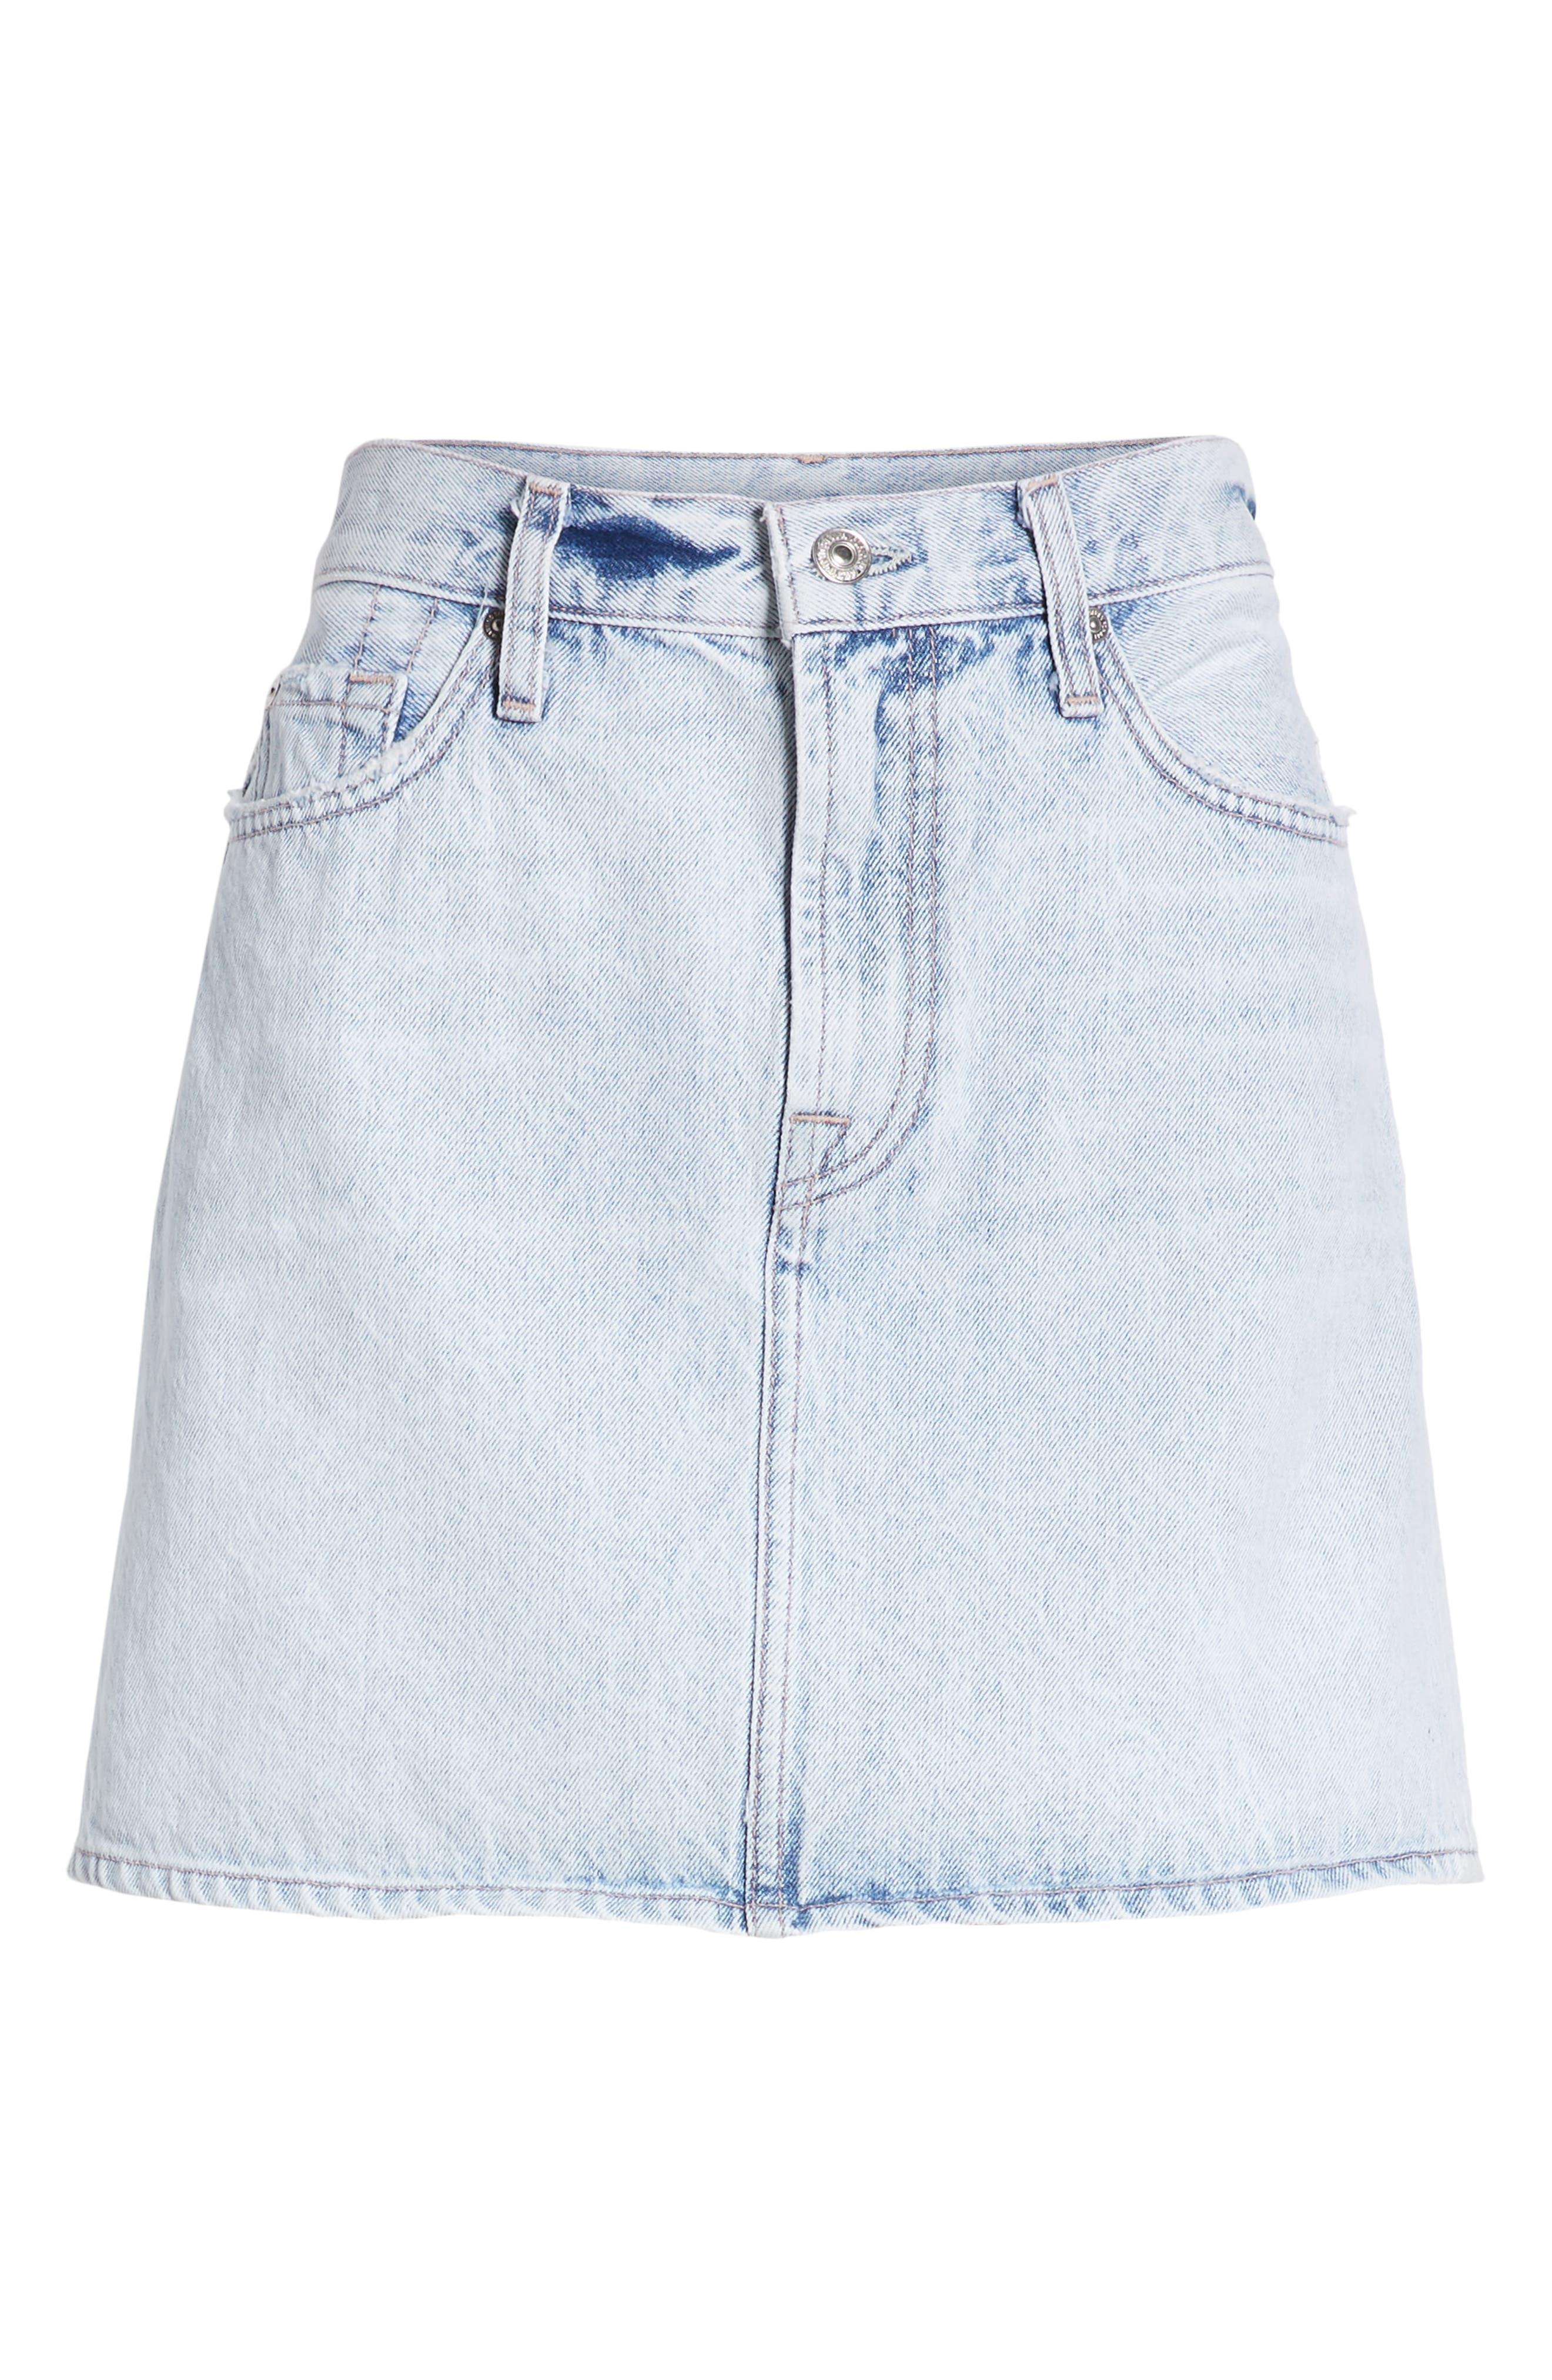 7 FOR ALL MANKIND<SUP>®</SUP>, Miniskirt, Alternate thumbnail 7, color, CLOUD BLUE